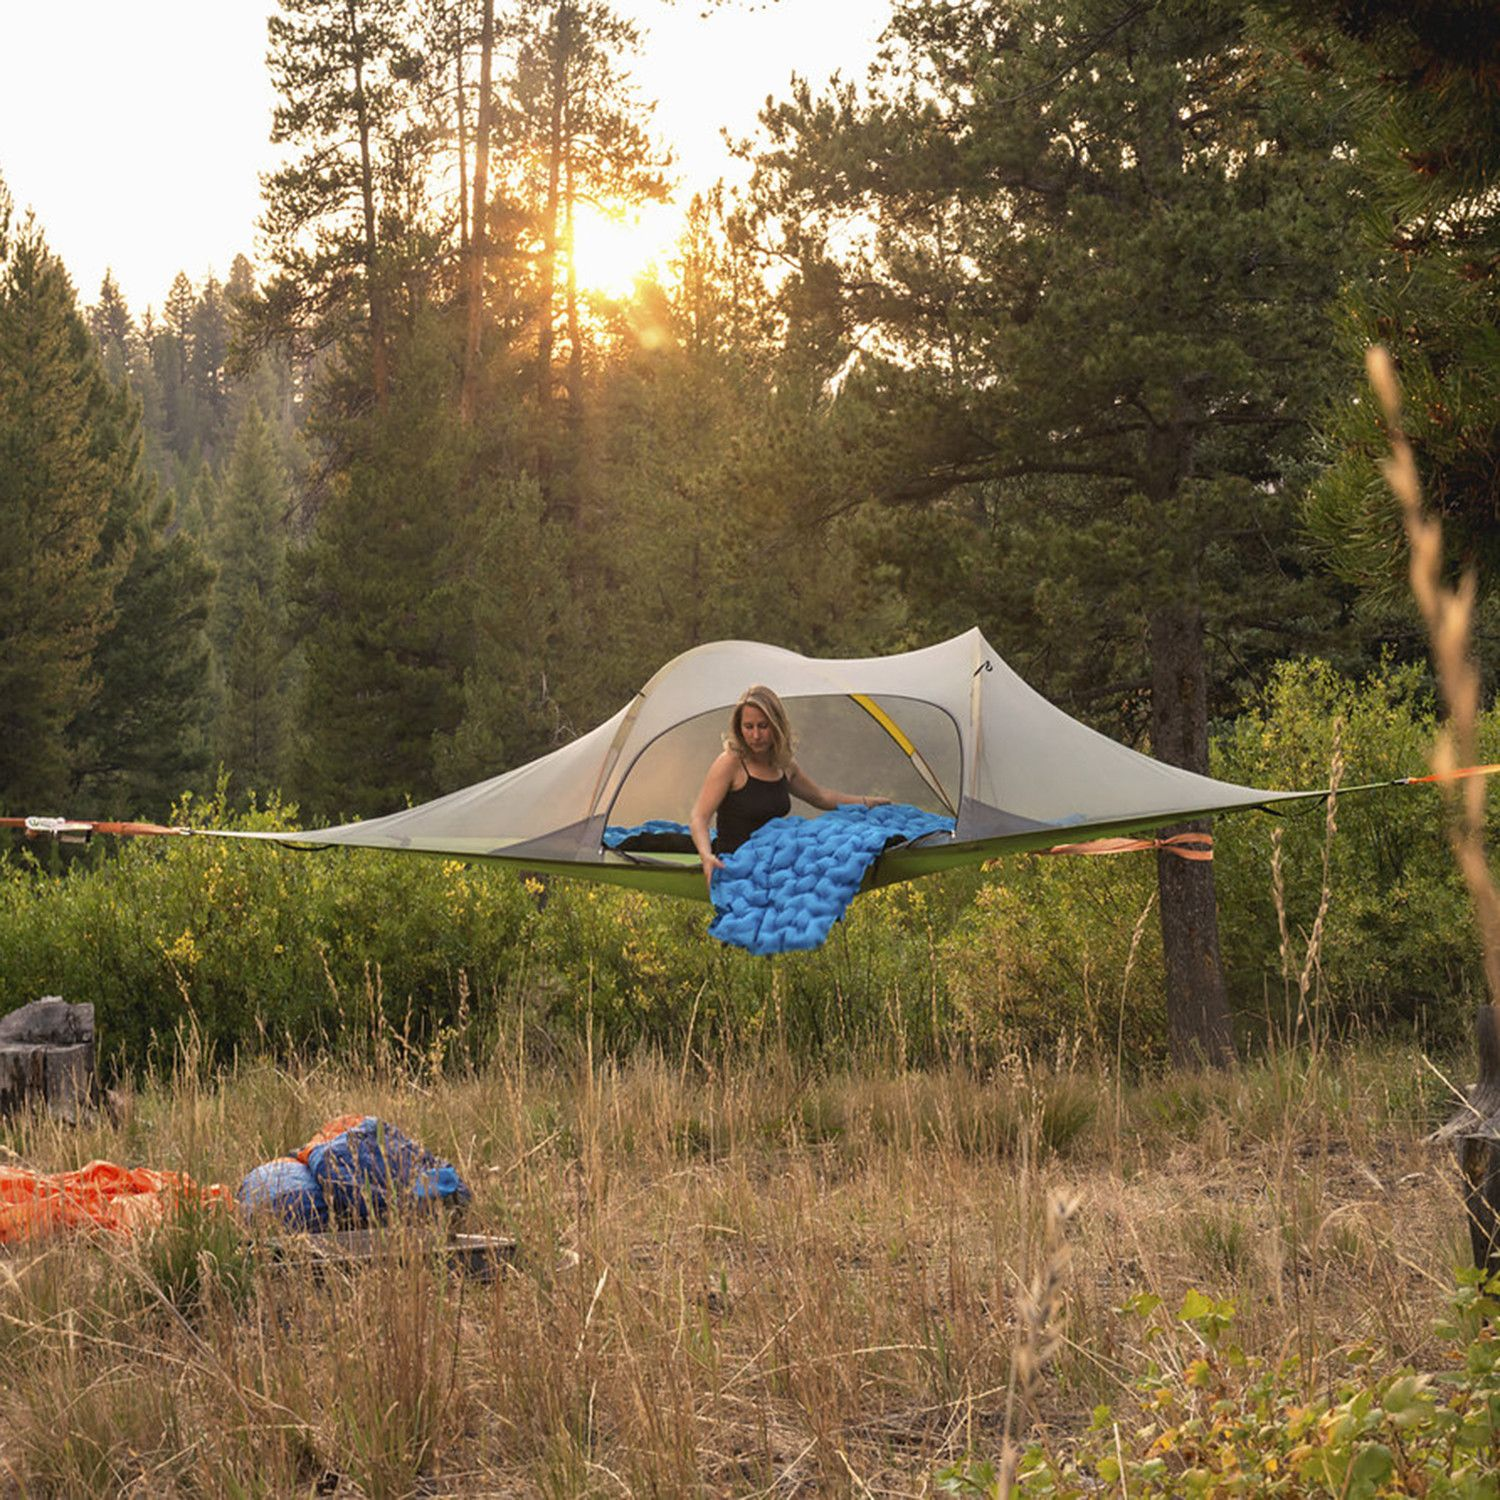 This unique and comfortable outdoor shelter is not only fun and immensely comfortable but also elevates you above inhospitable ground conditions insects ... & Stingray Tree Tent (Forest Green) | Camping/Hiking/Outdoor ...